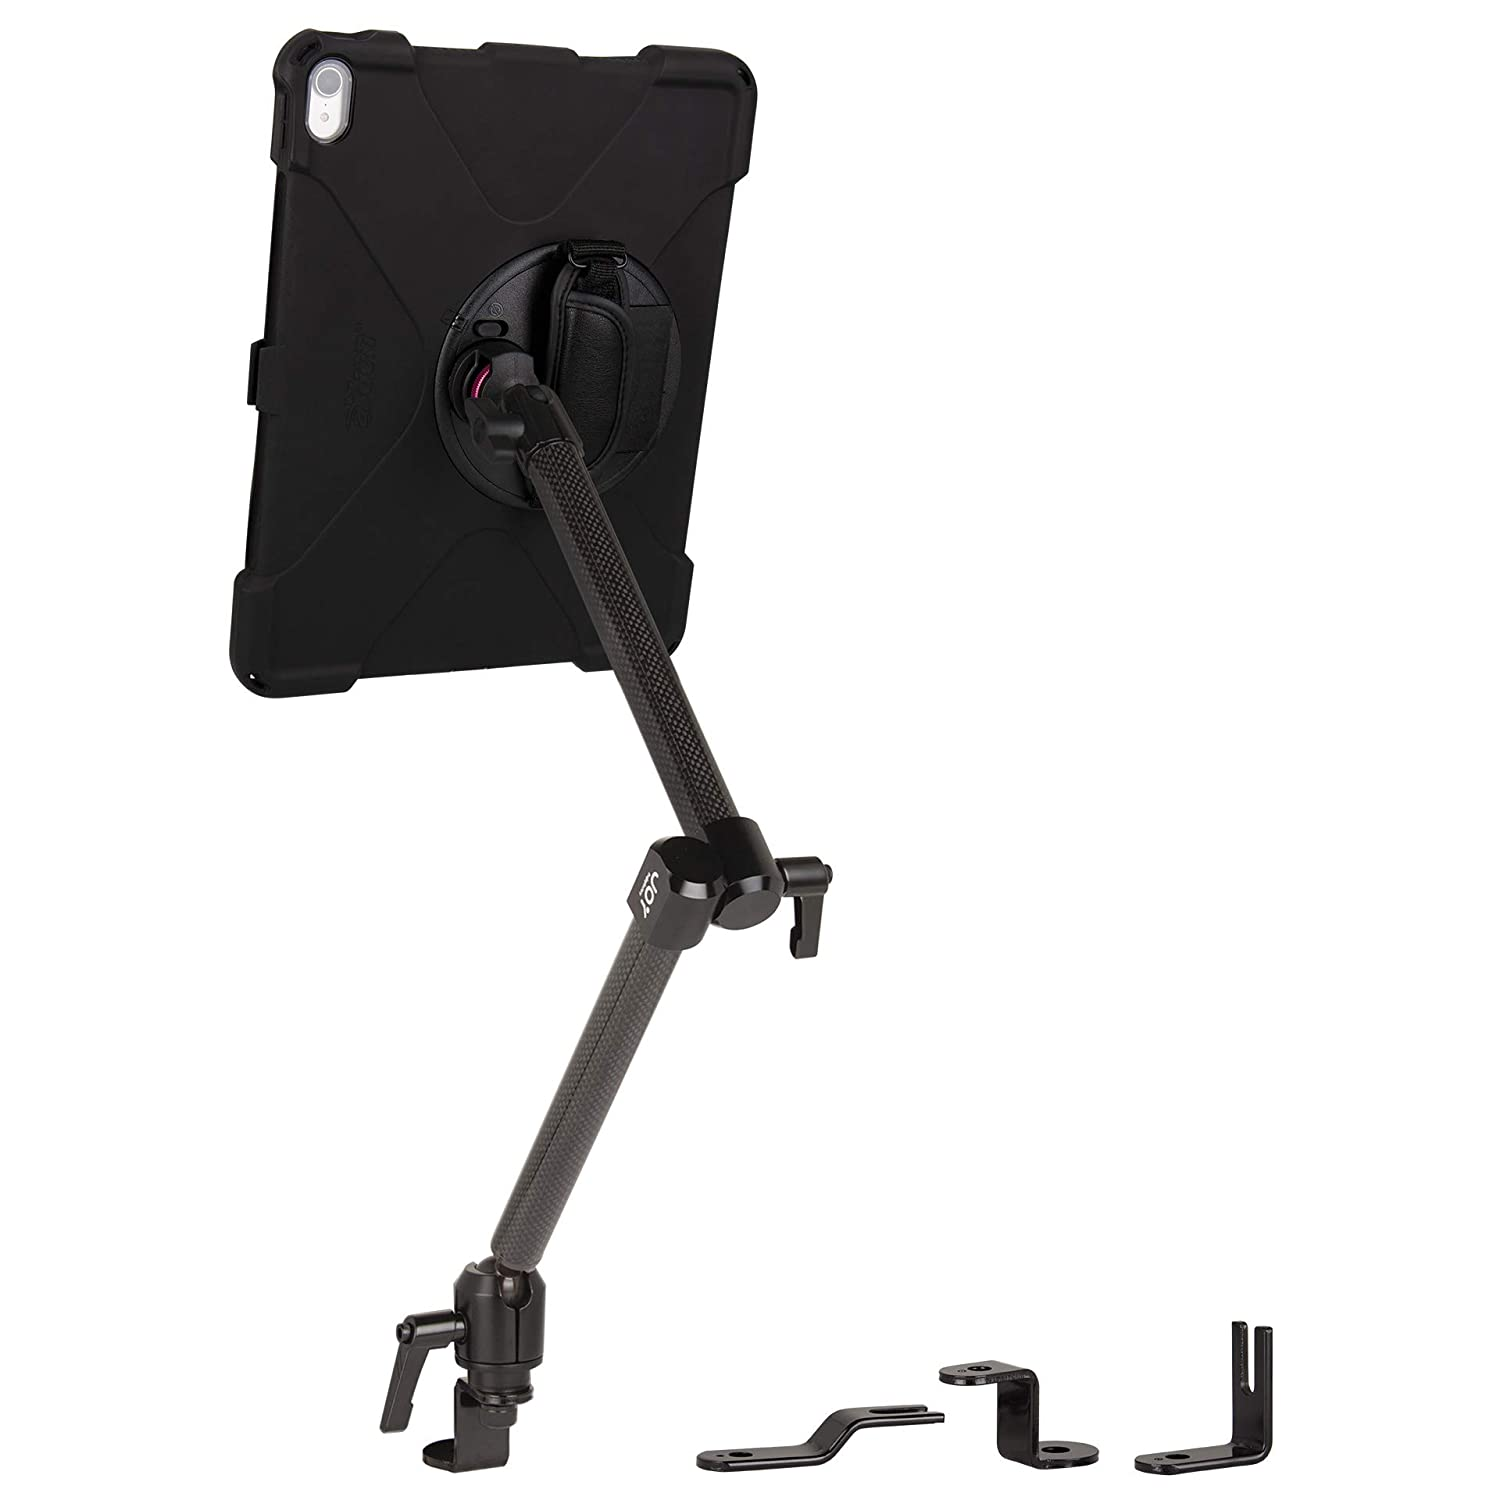 Built-in Screen Protector Hand Strap MWA4105MP The Joy Factory MagConnect Carbon Fiber Car//Truck Seat Bolt Mount w//aXtion Bold MP Water-Resistant Rugged Shockproof Case iPad Pro 12.9 3rd Gen